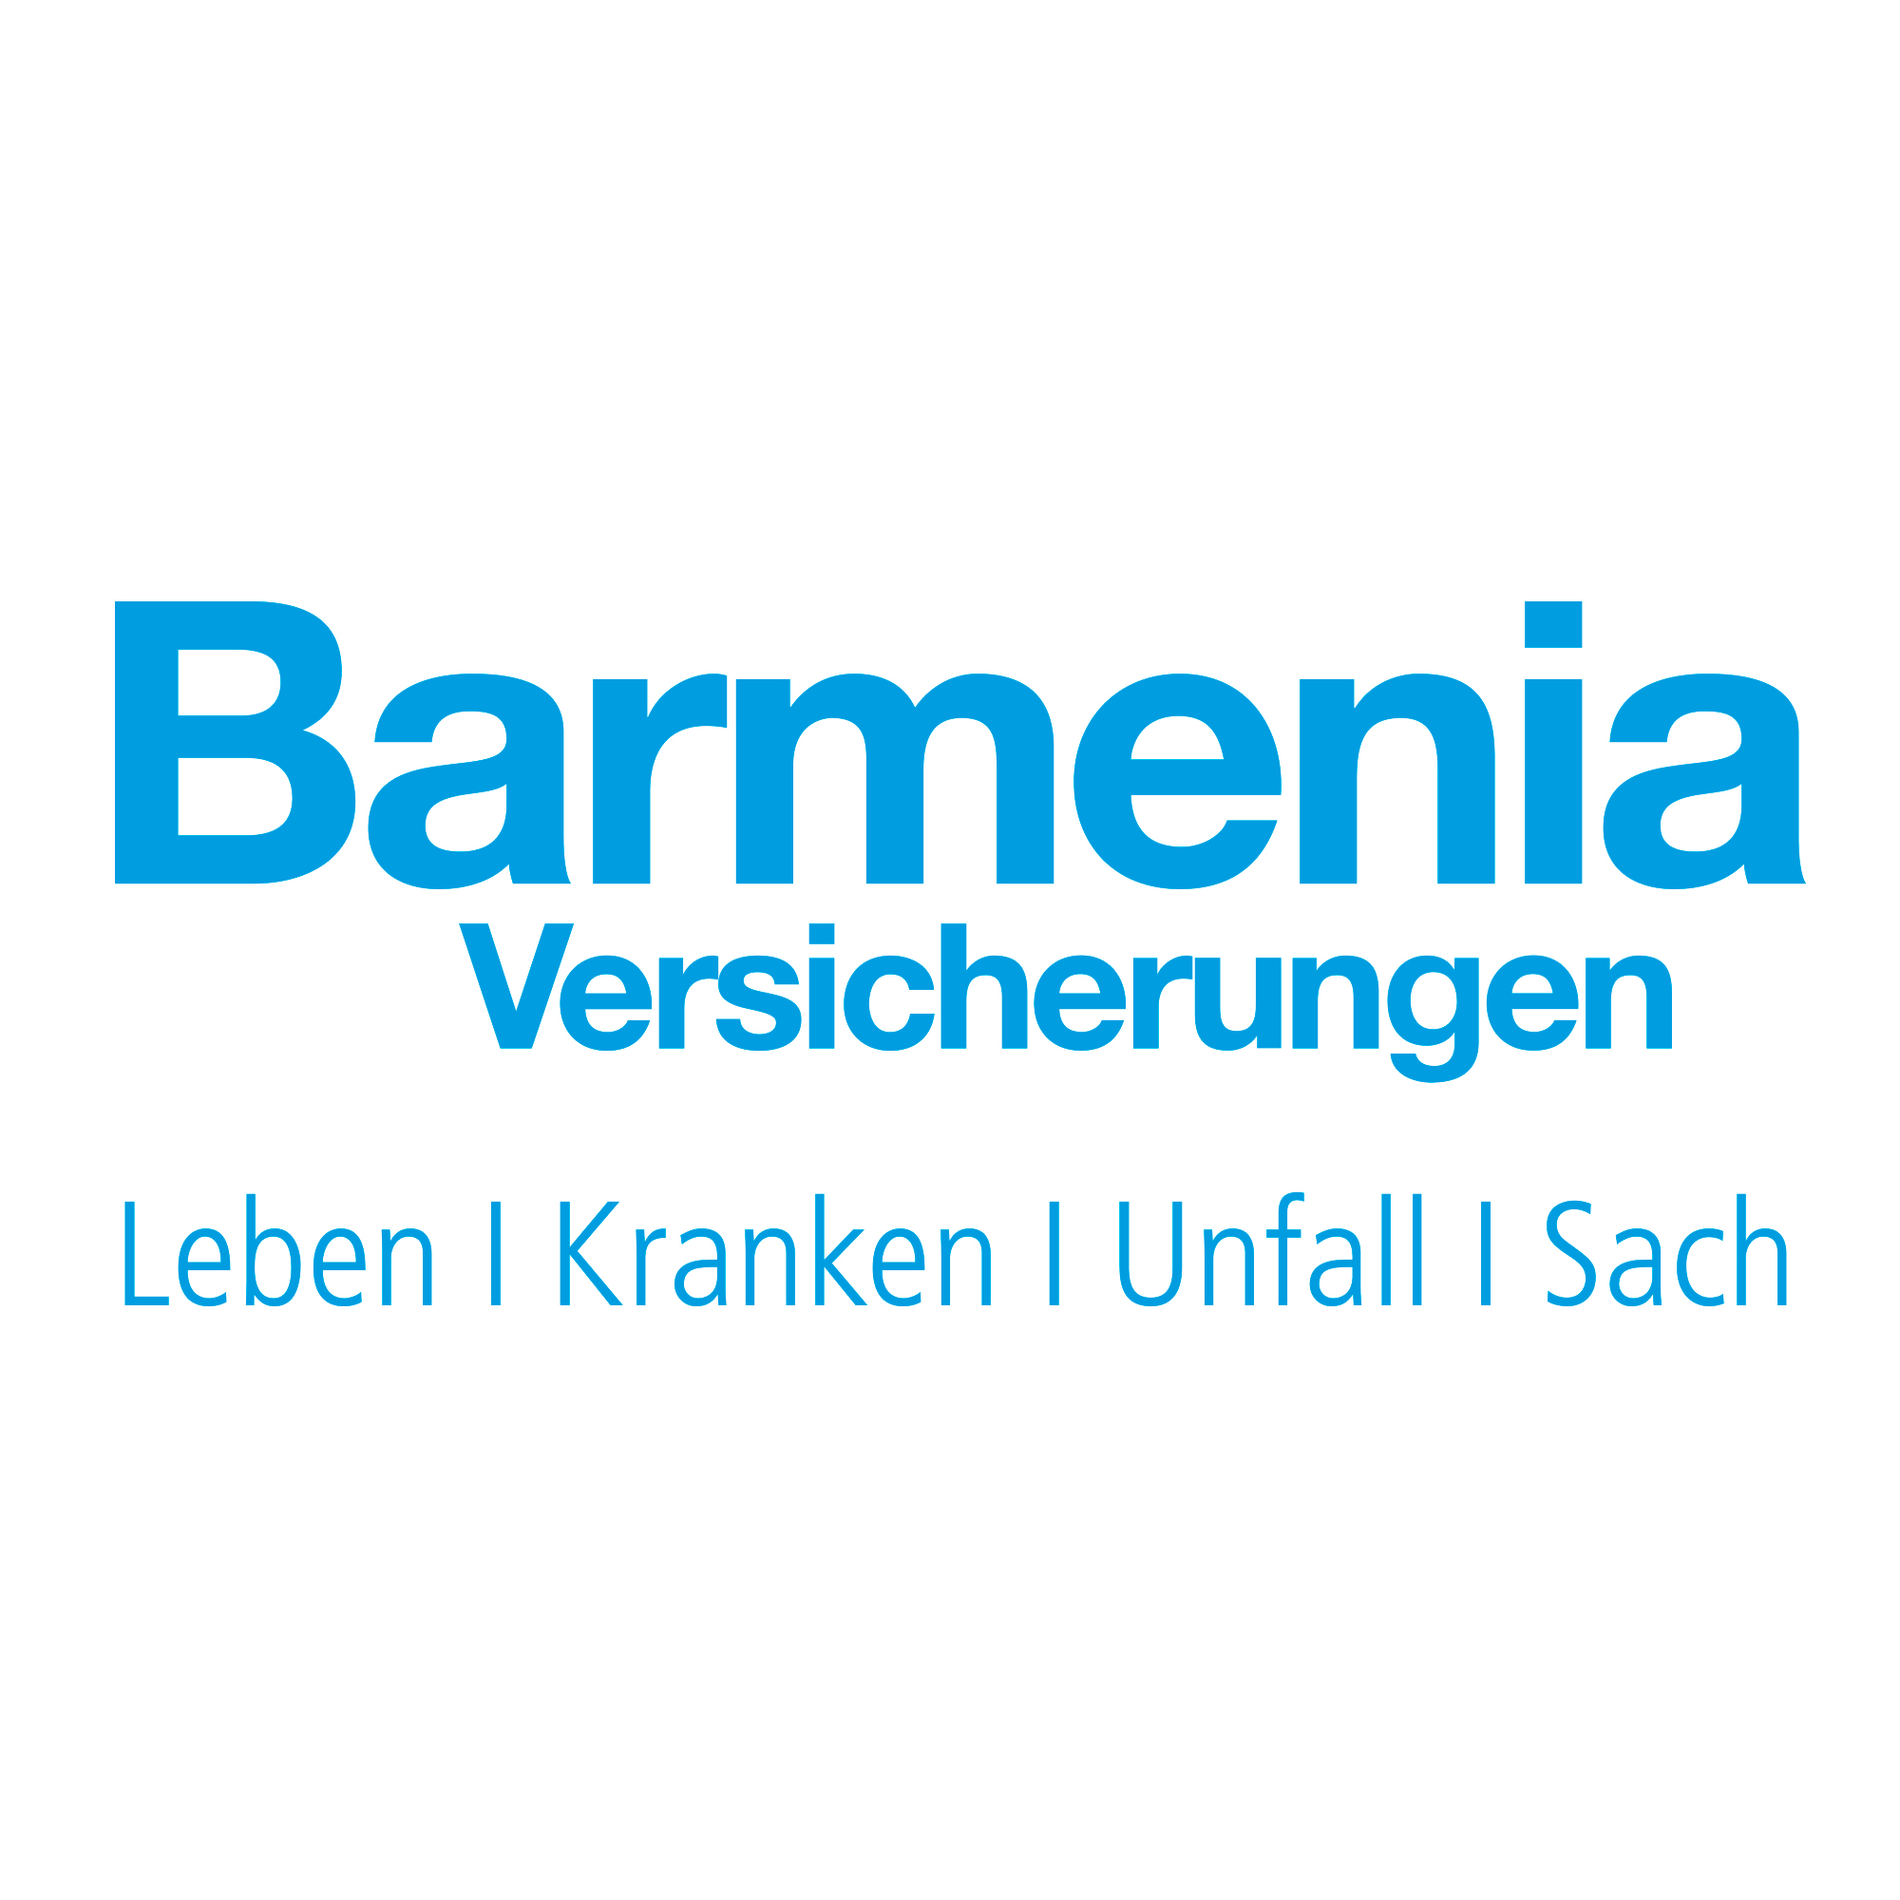 Barmenia Versicherung - Georg-Christian Stockinger